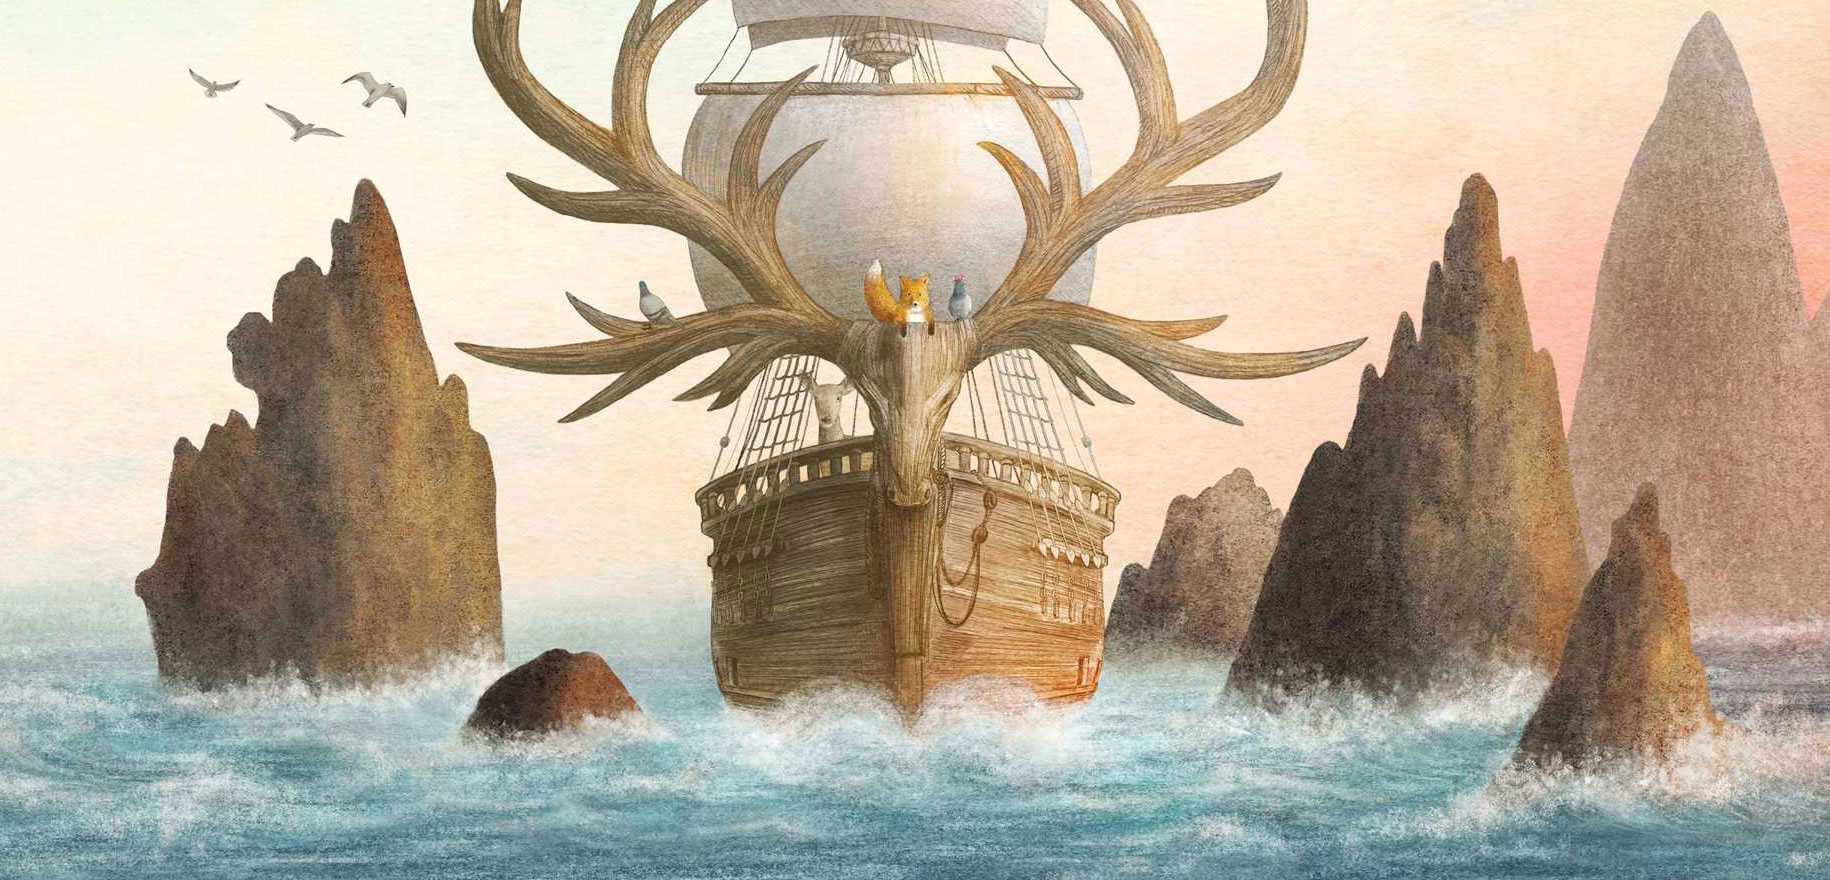 A detail of the cover illustration by Terry Fan and Eric Fan for The Antlered Ship.